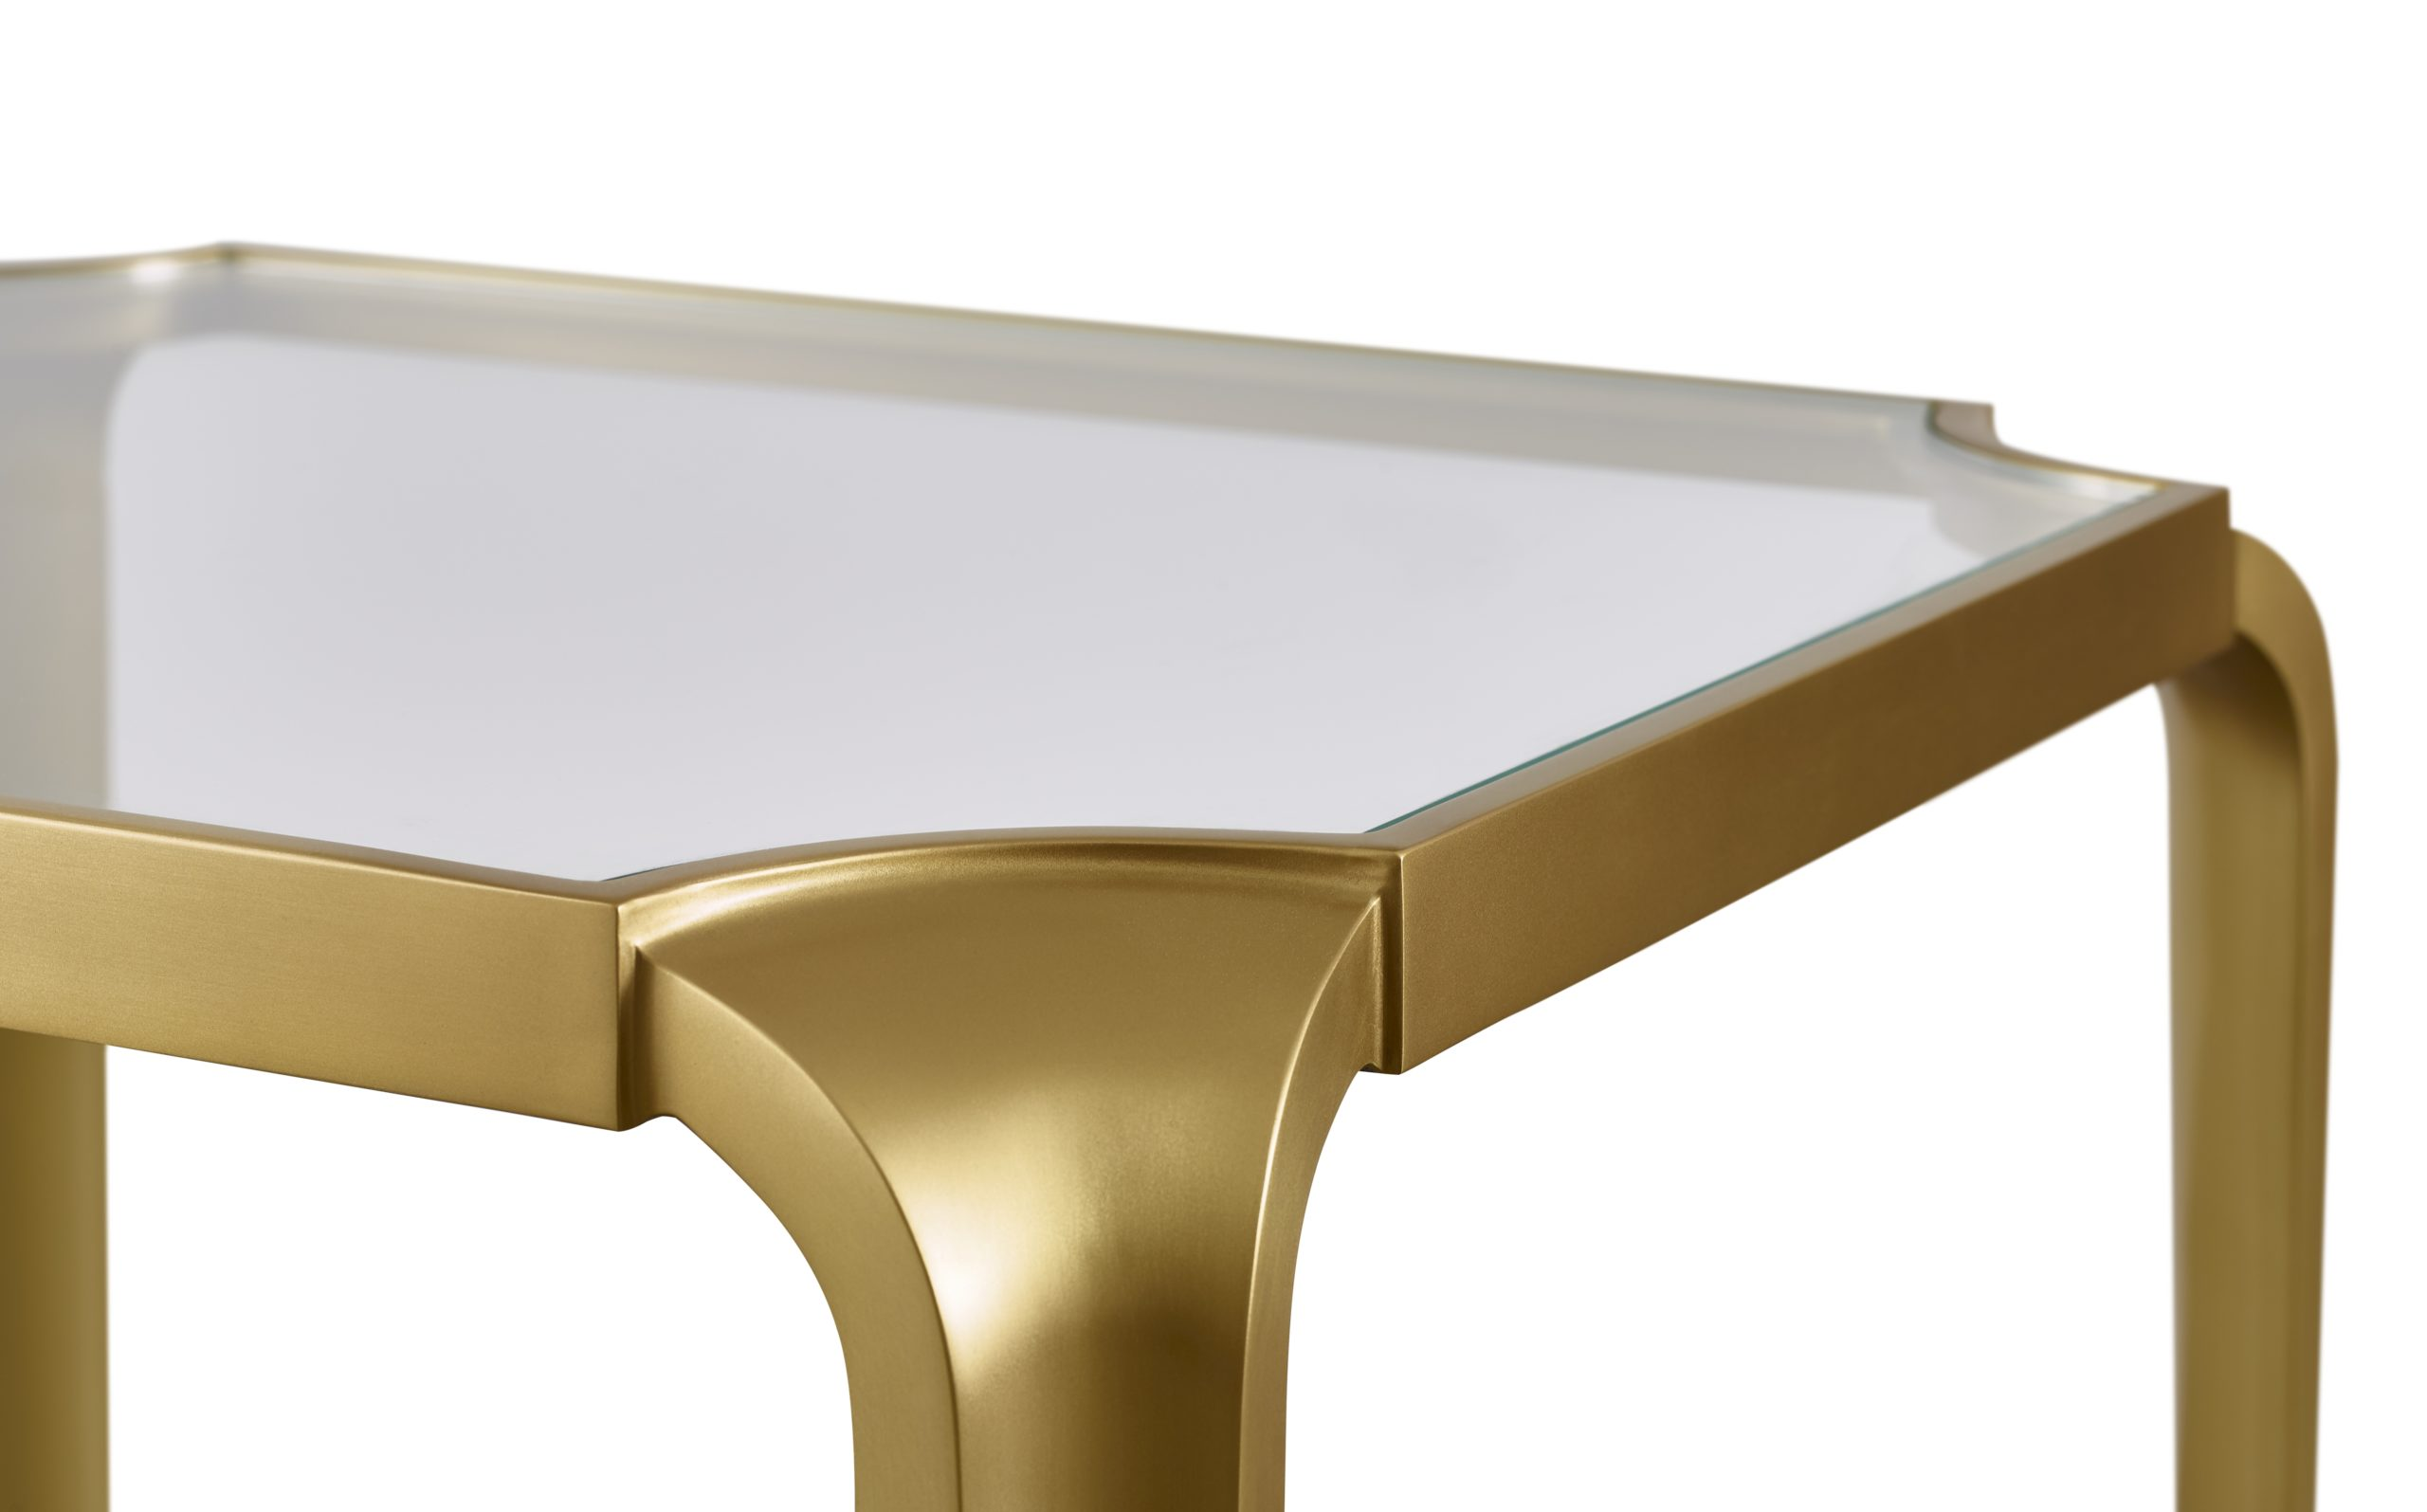 Baker_products_WNWN_lotus_side_table_detail_BAA3053-scaled-3